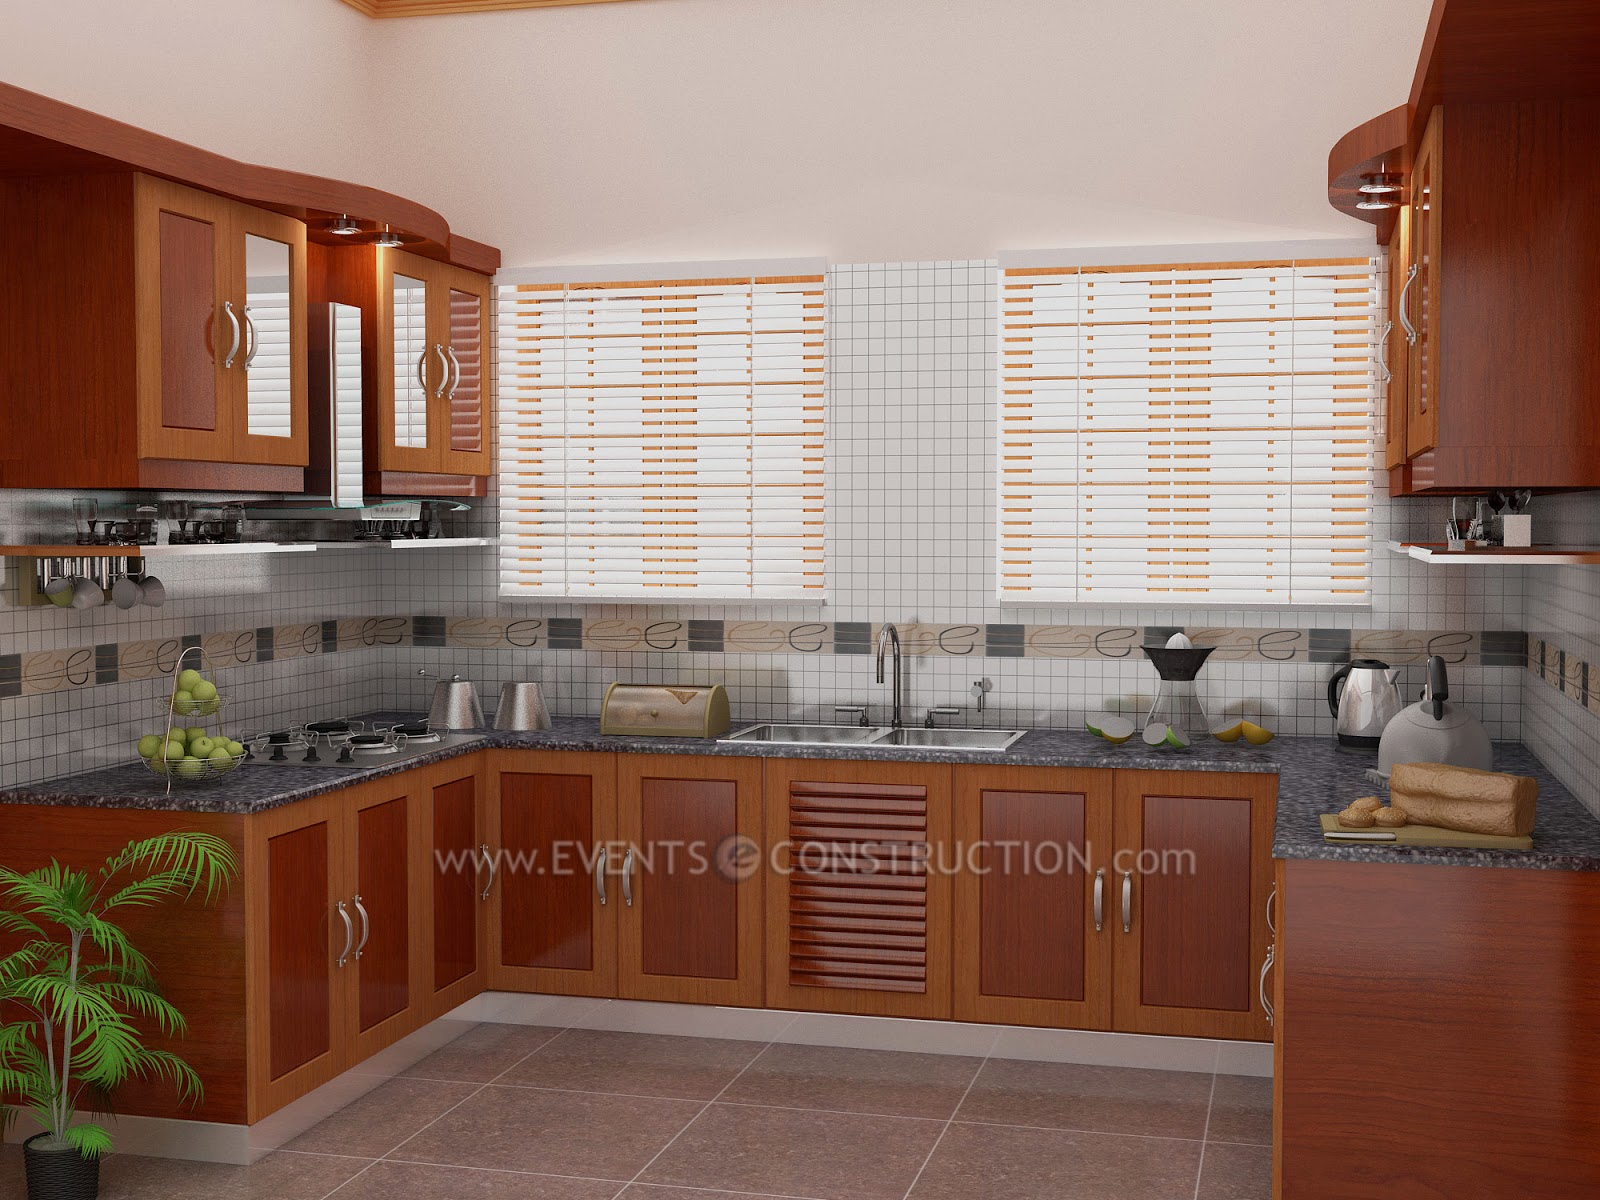 Kitchen Model small kitchen design in kerala style and kerala style wooden decor